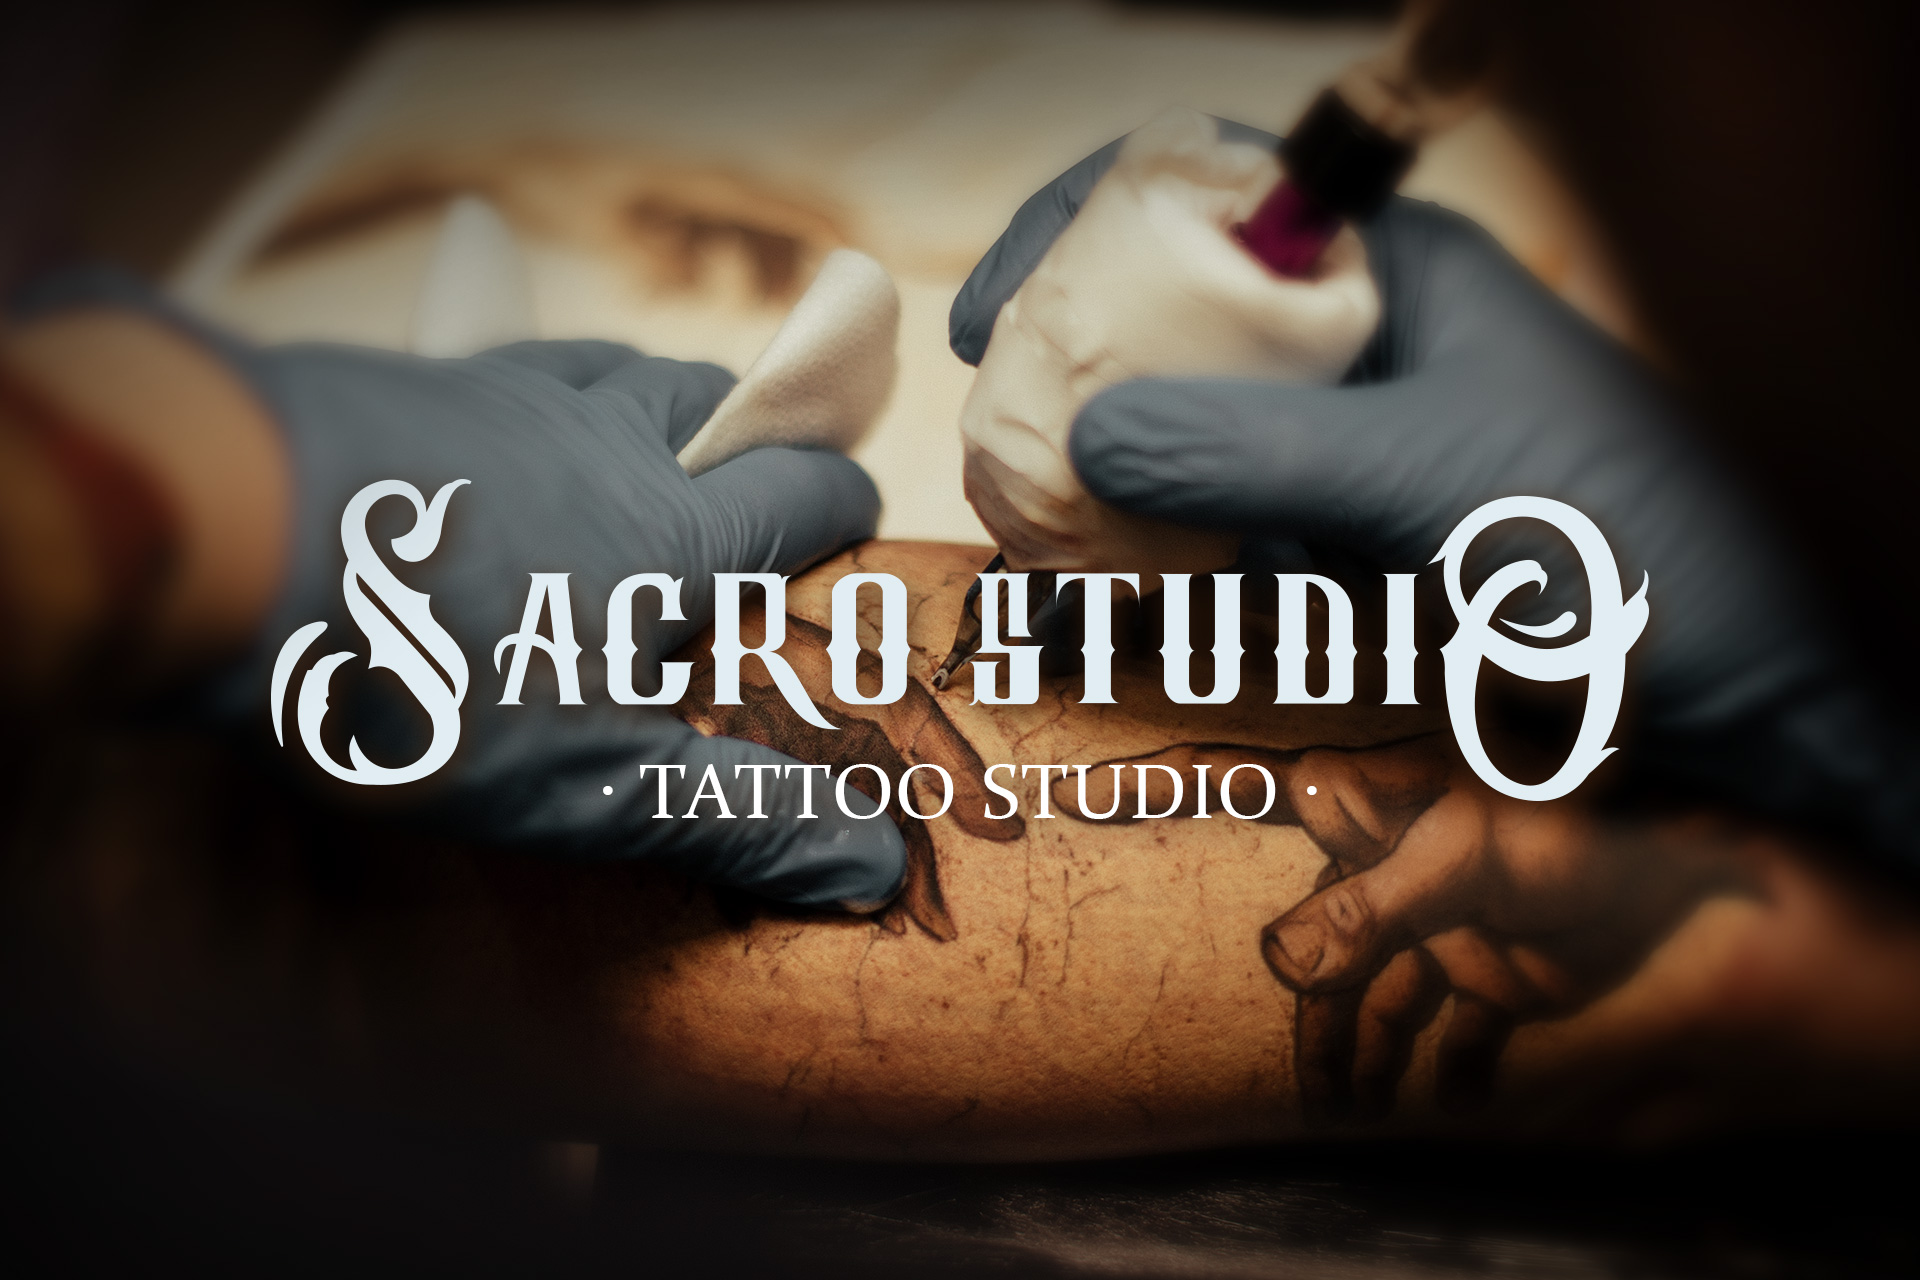 Sacro tattoo studio